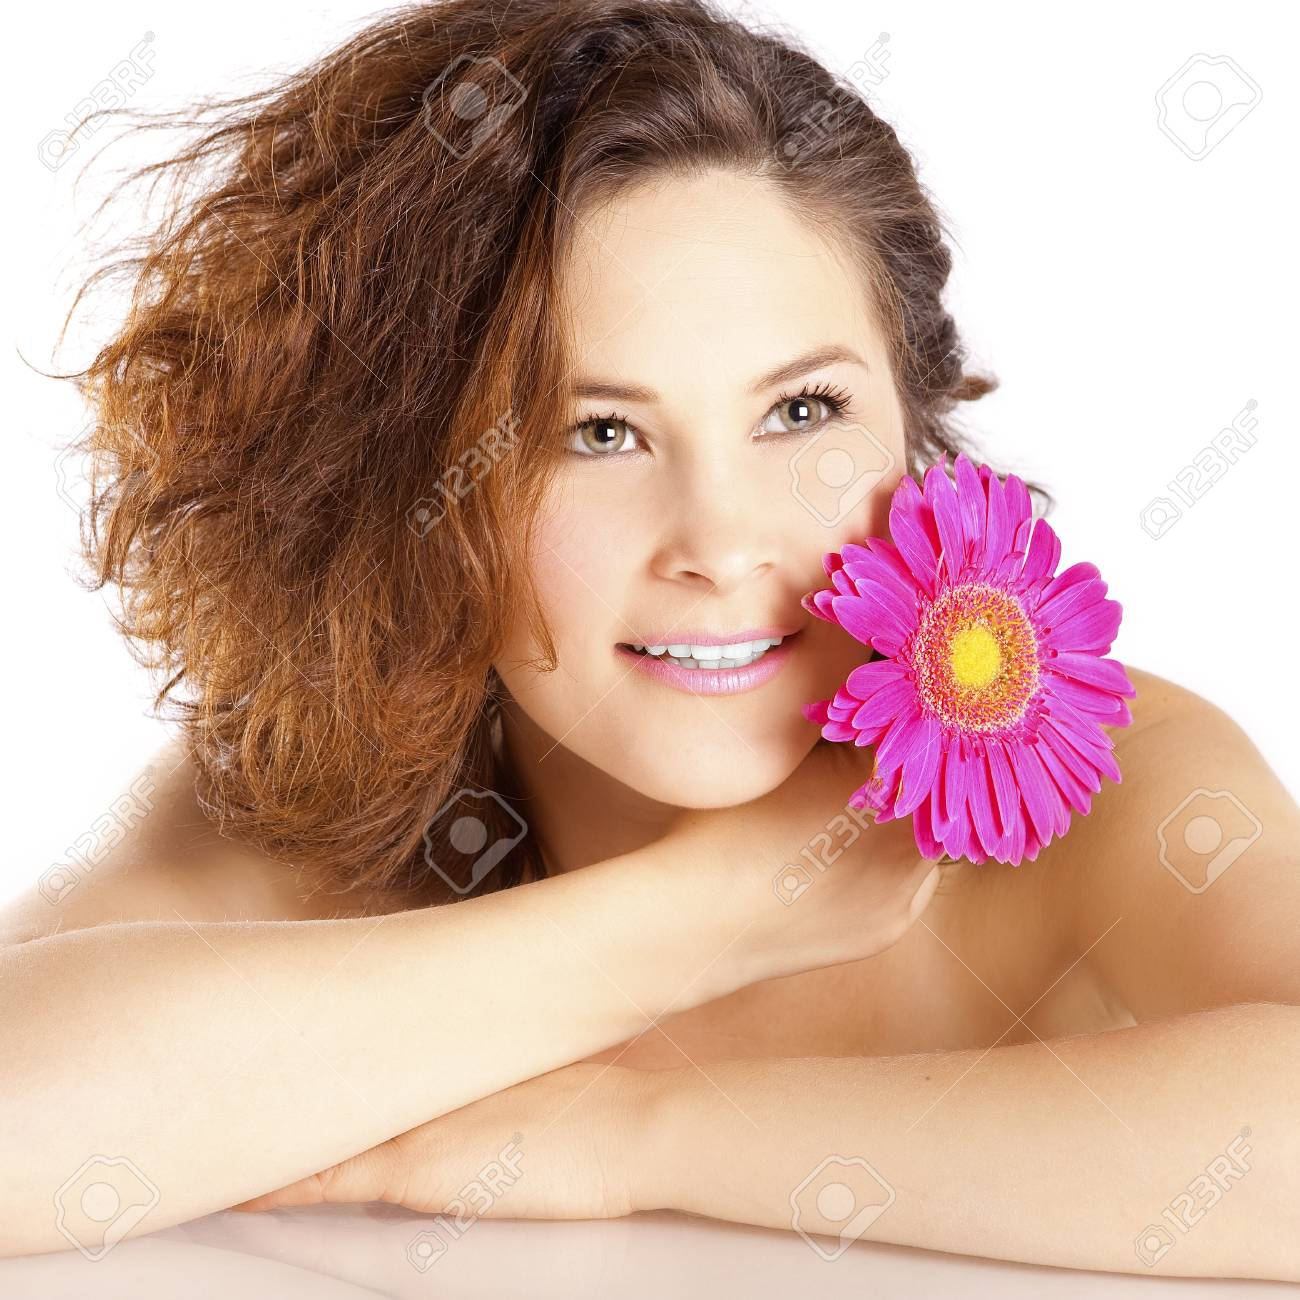 Girl with a flower on a white background in the studio Stock Photo - 12685090